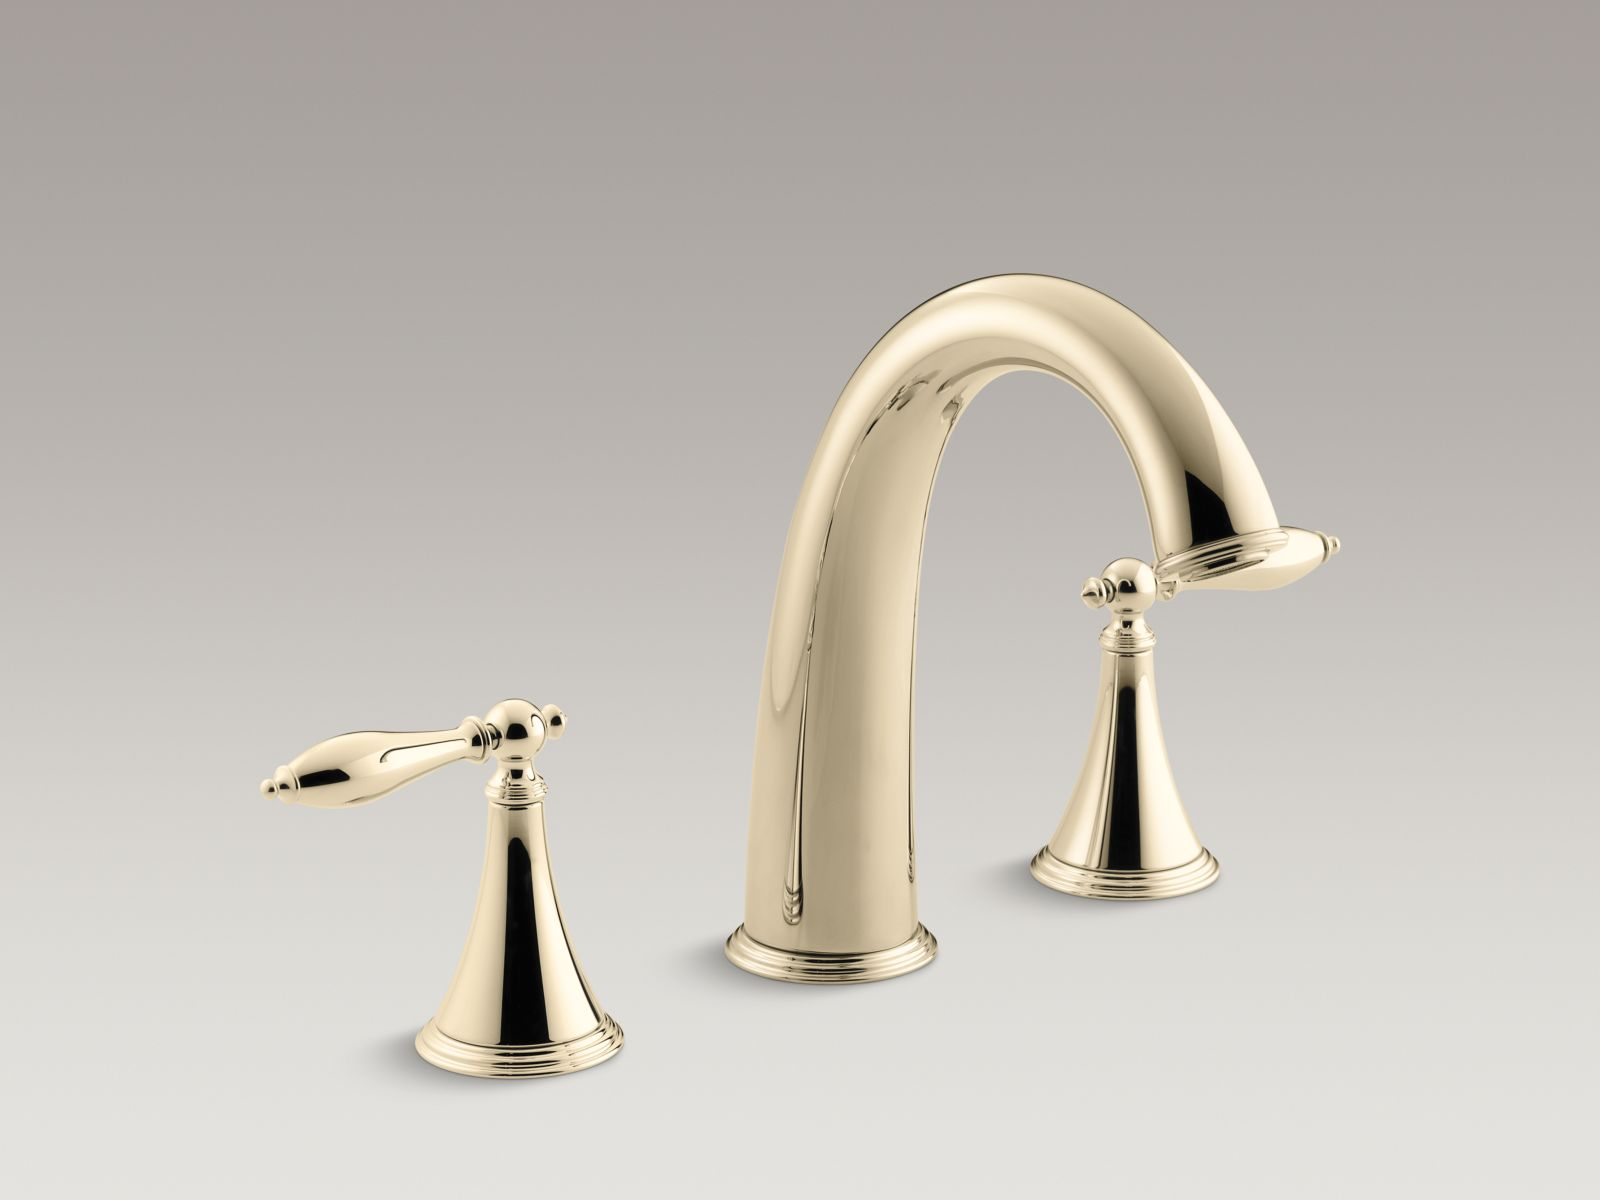 Kohler Finial® Traditional K-T314-4M-AF Deck-mount bath faucet trim for high-flow valve with lever handles, valve not included Vibrant French Gold